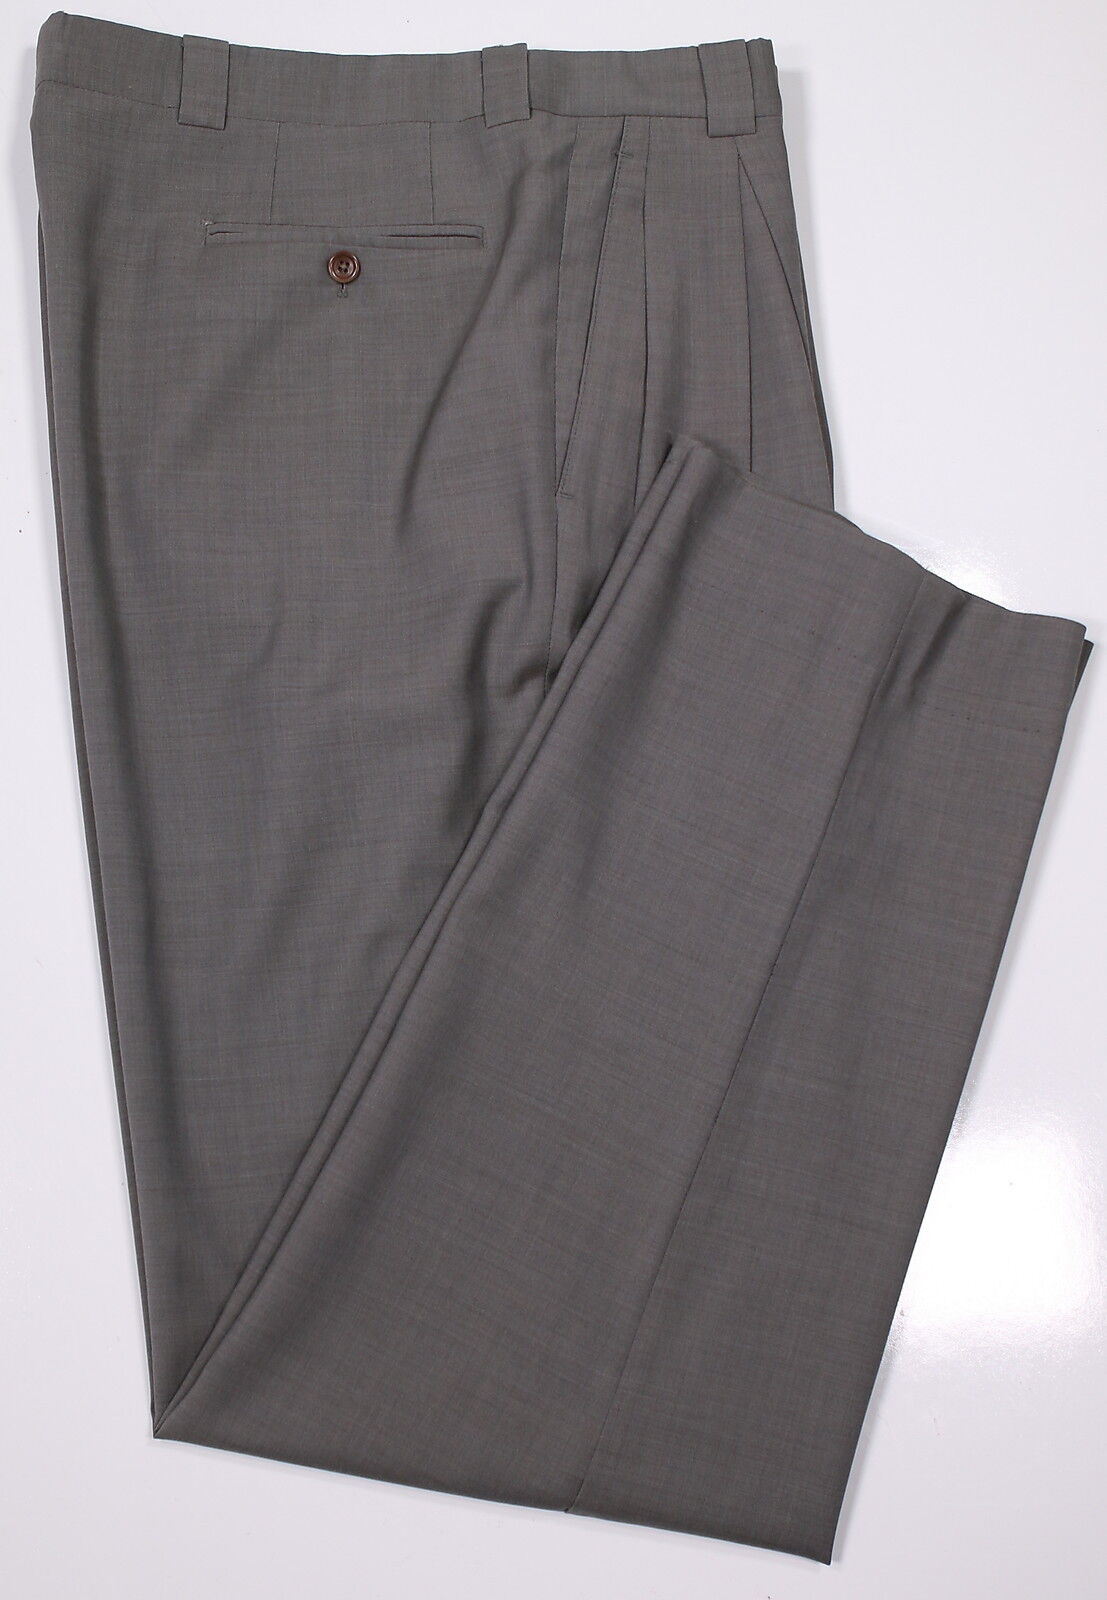 ARMANI COLLEZIONI  Solid Taupe Pleated Wool Dress Pants Trousers 33 x 33